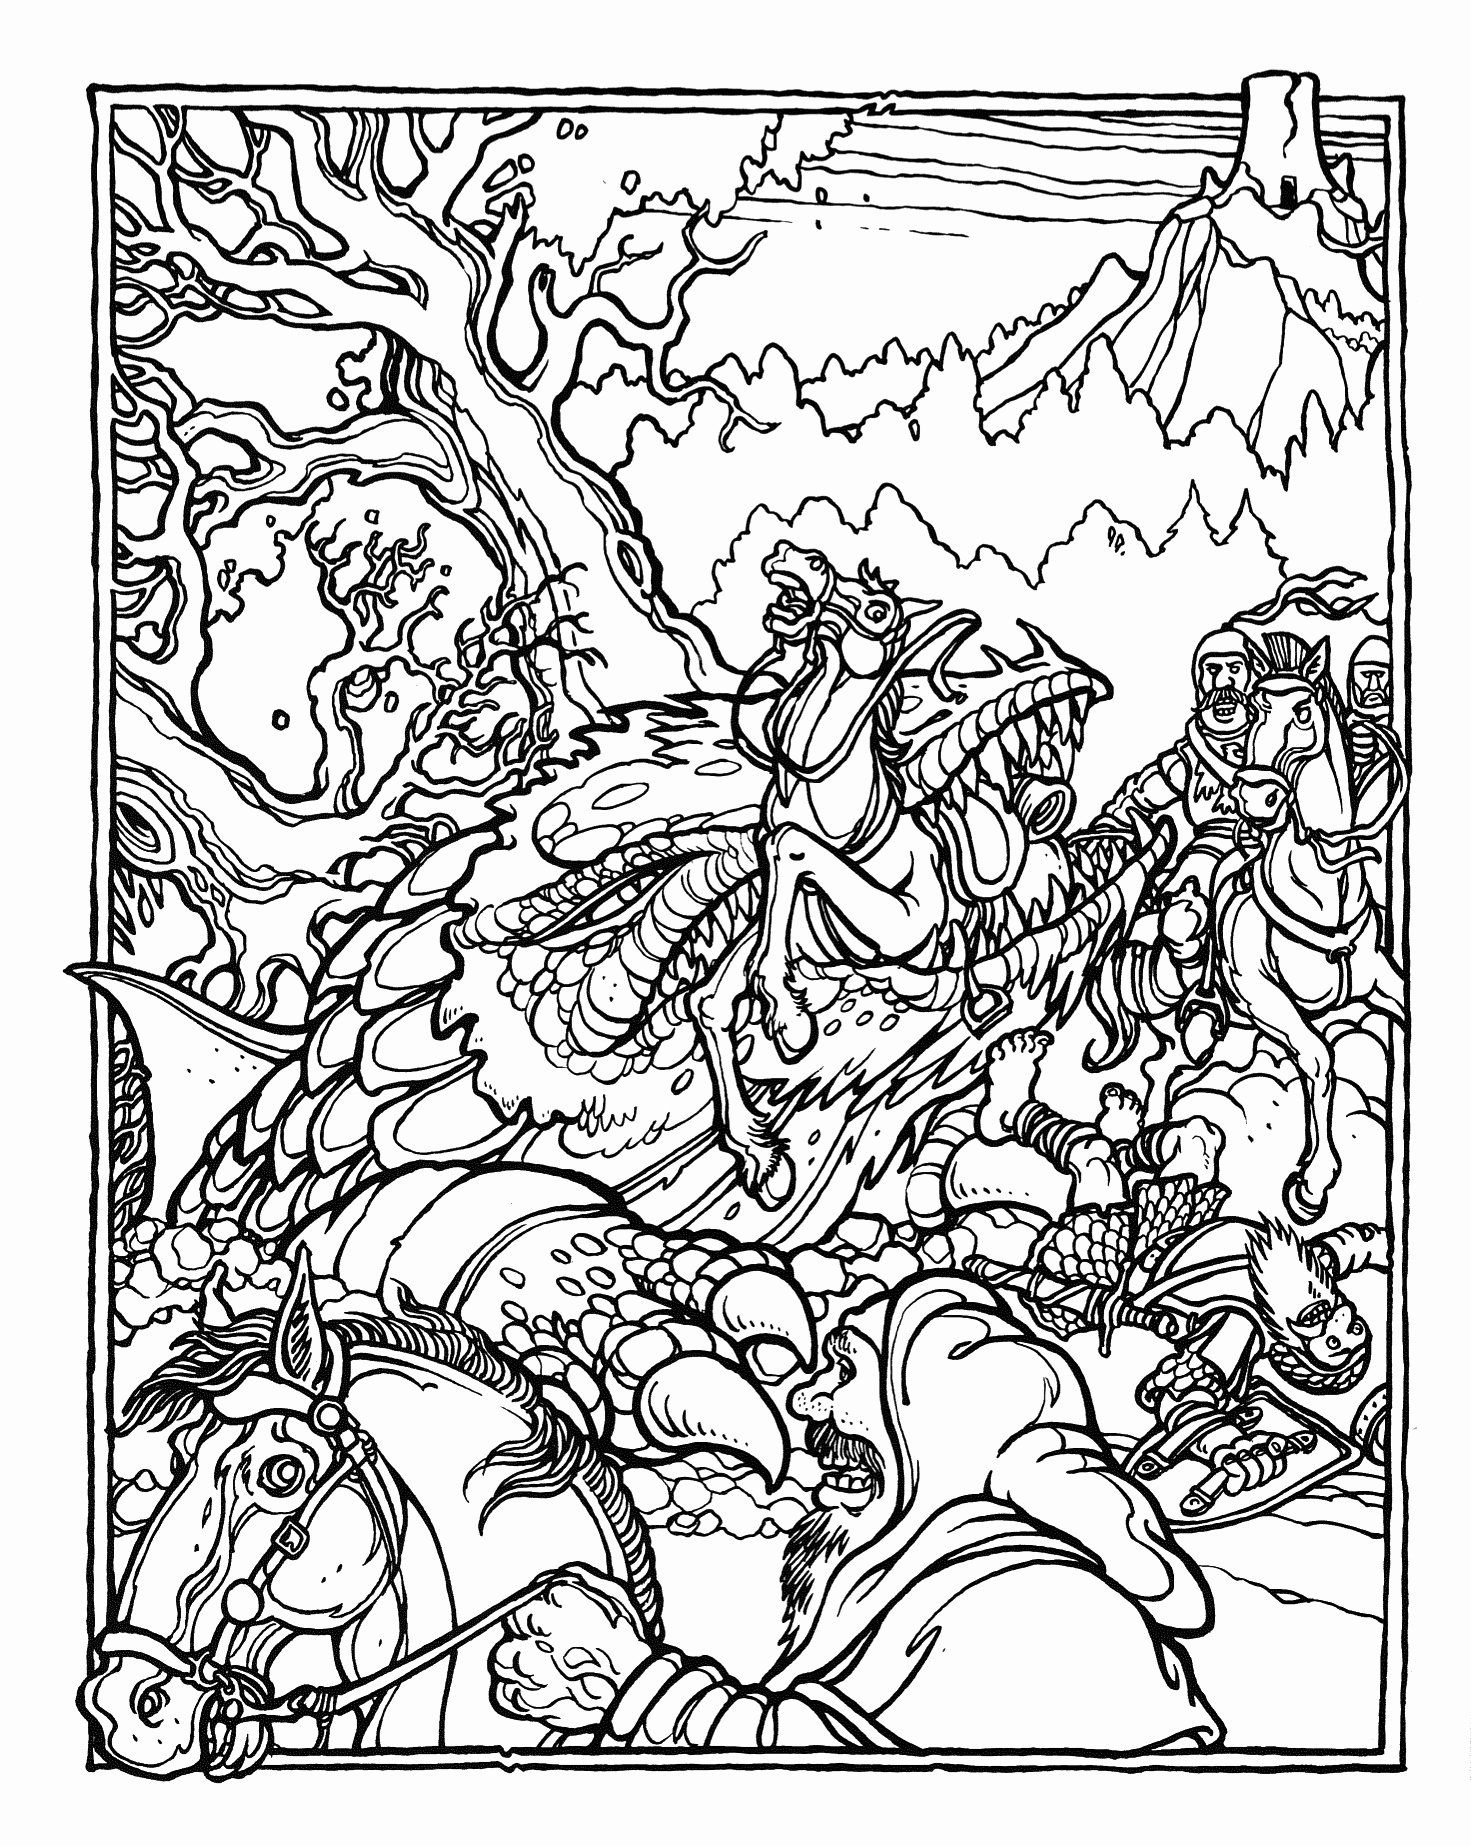 Dungeons And Dragons Coloring Book Beautiful Coloring Pages Coloring Book Dragon Books Ideas For In 2020 Dragon Coloring Page Coloring Books Coloring Pages